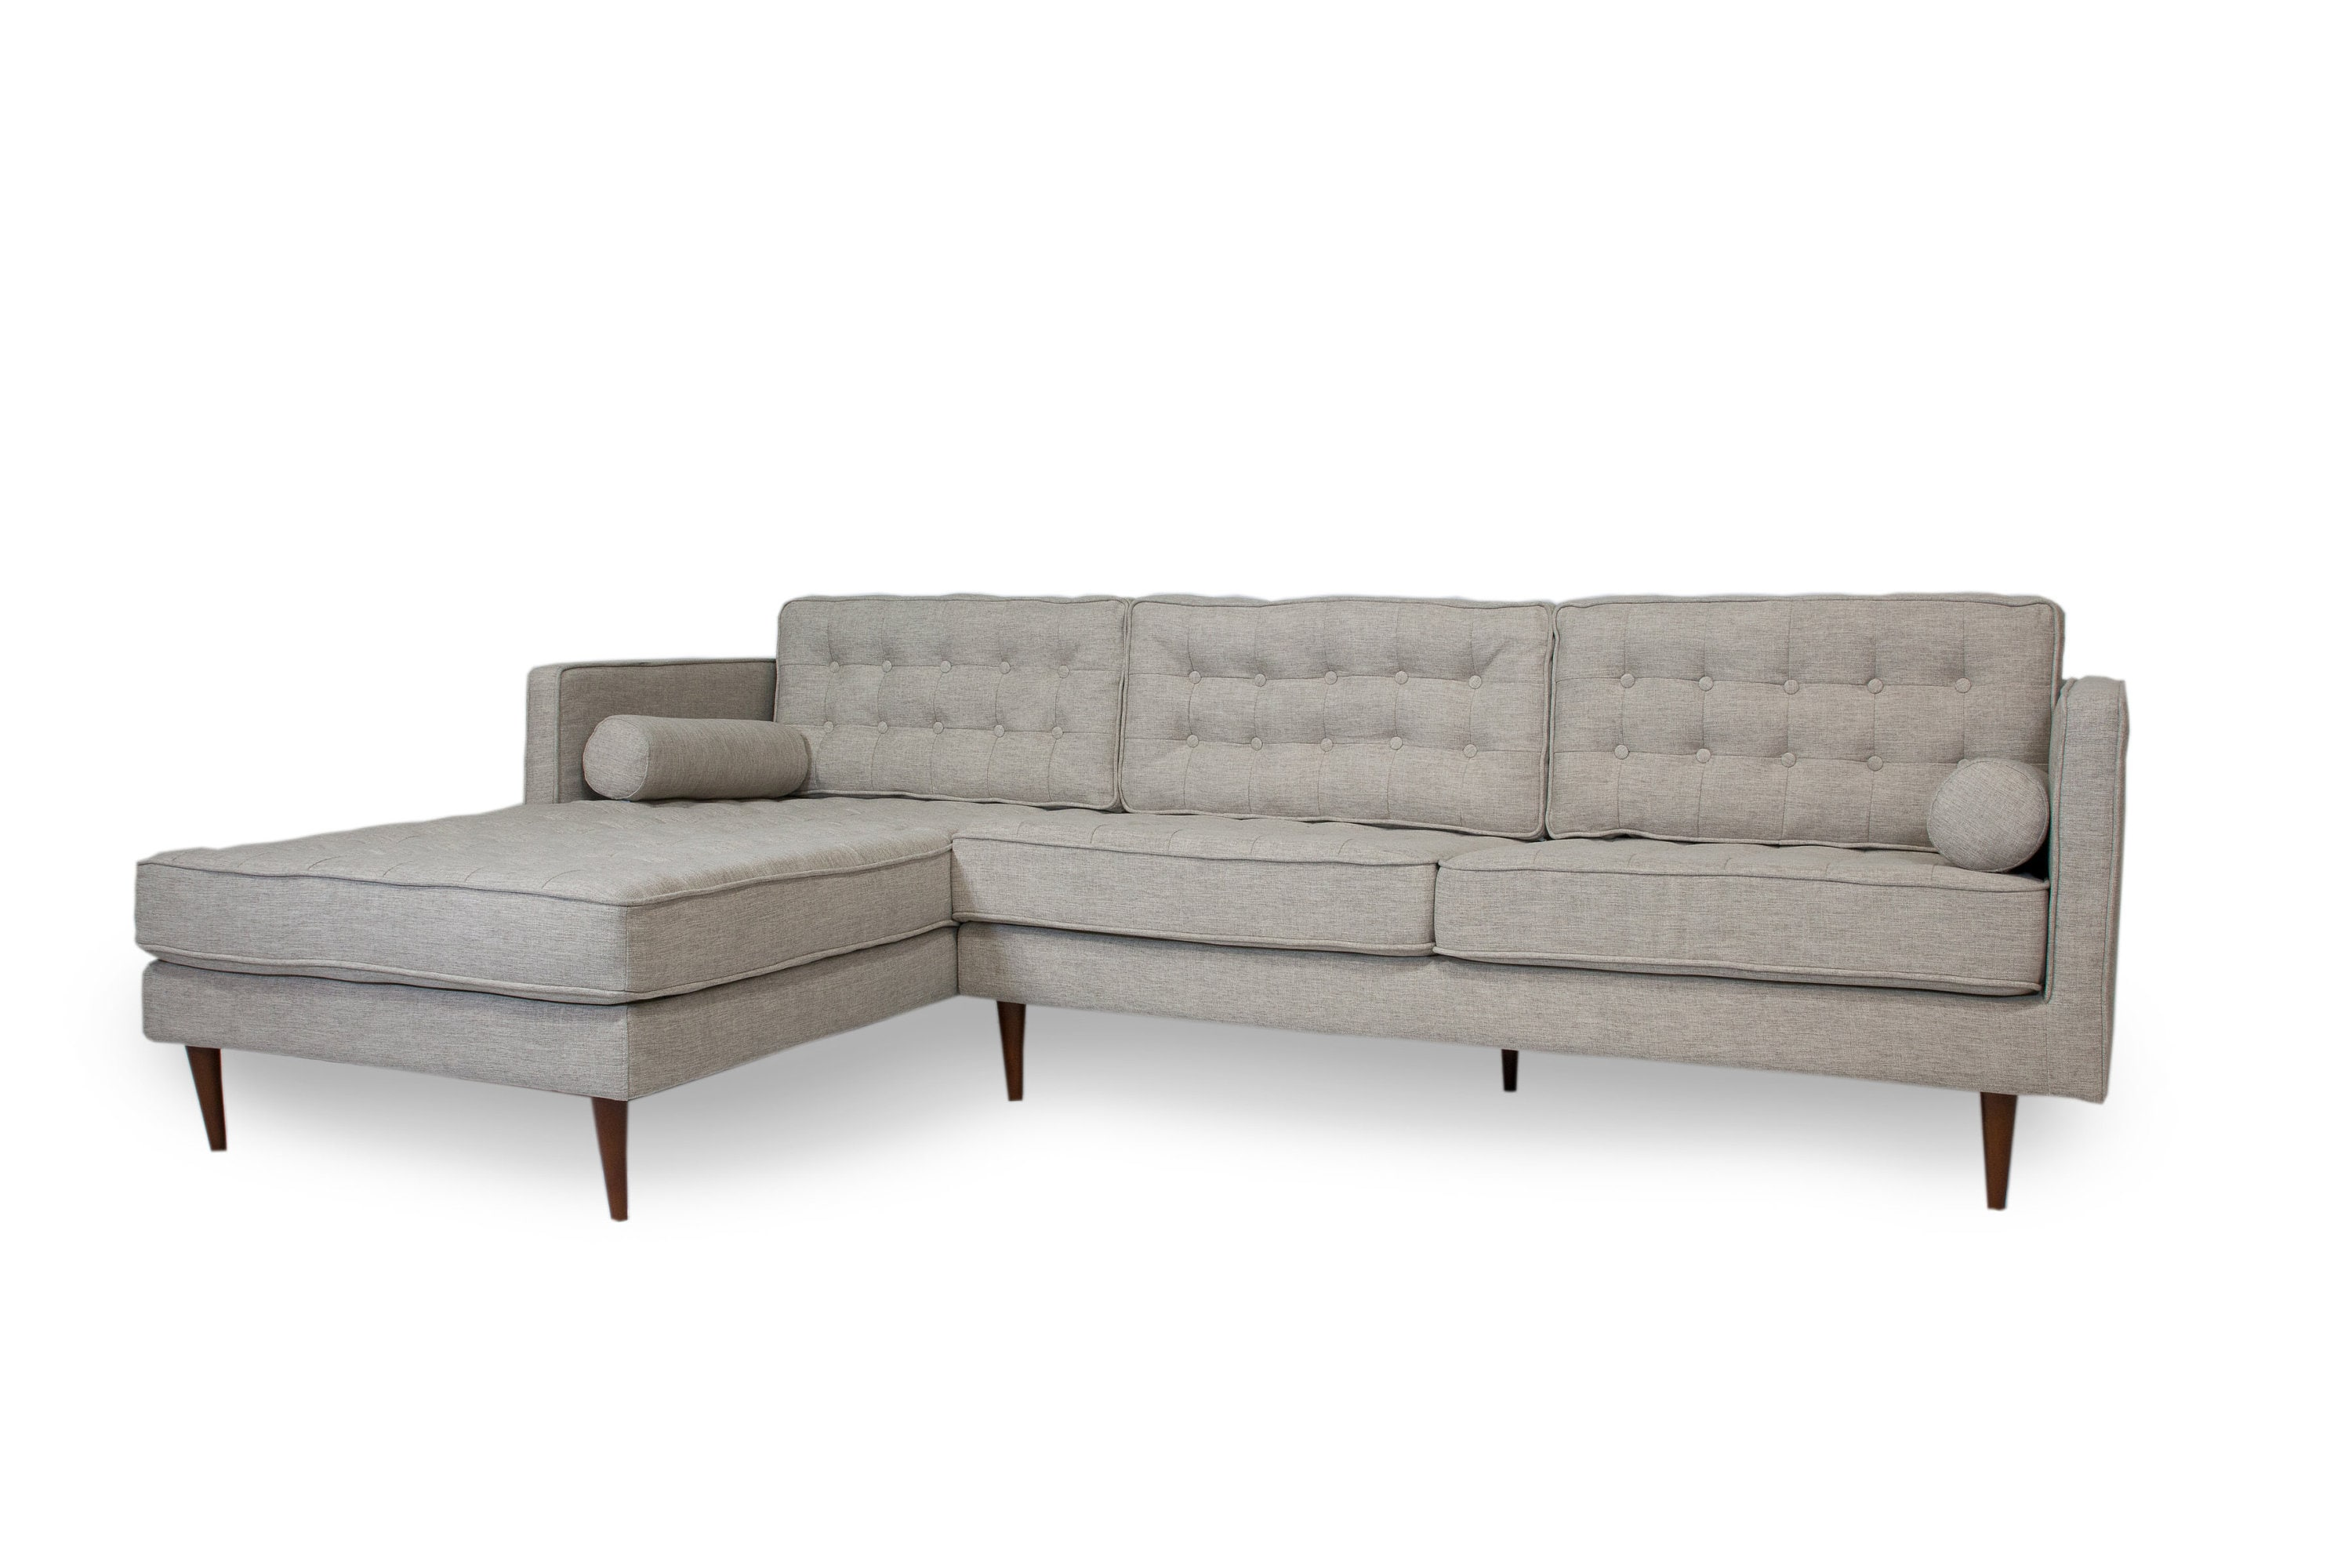 Mid Century Tufted Modern Danish Style Sectional Sofa With Walnut Legs Reversible Back Cushions L Shaped Contemporary Style Corner Couch